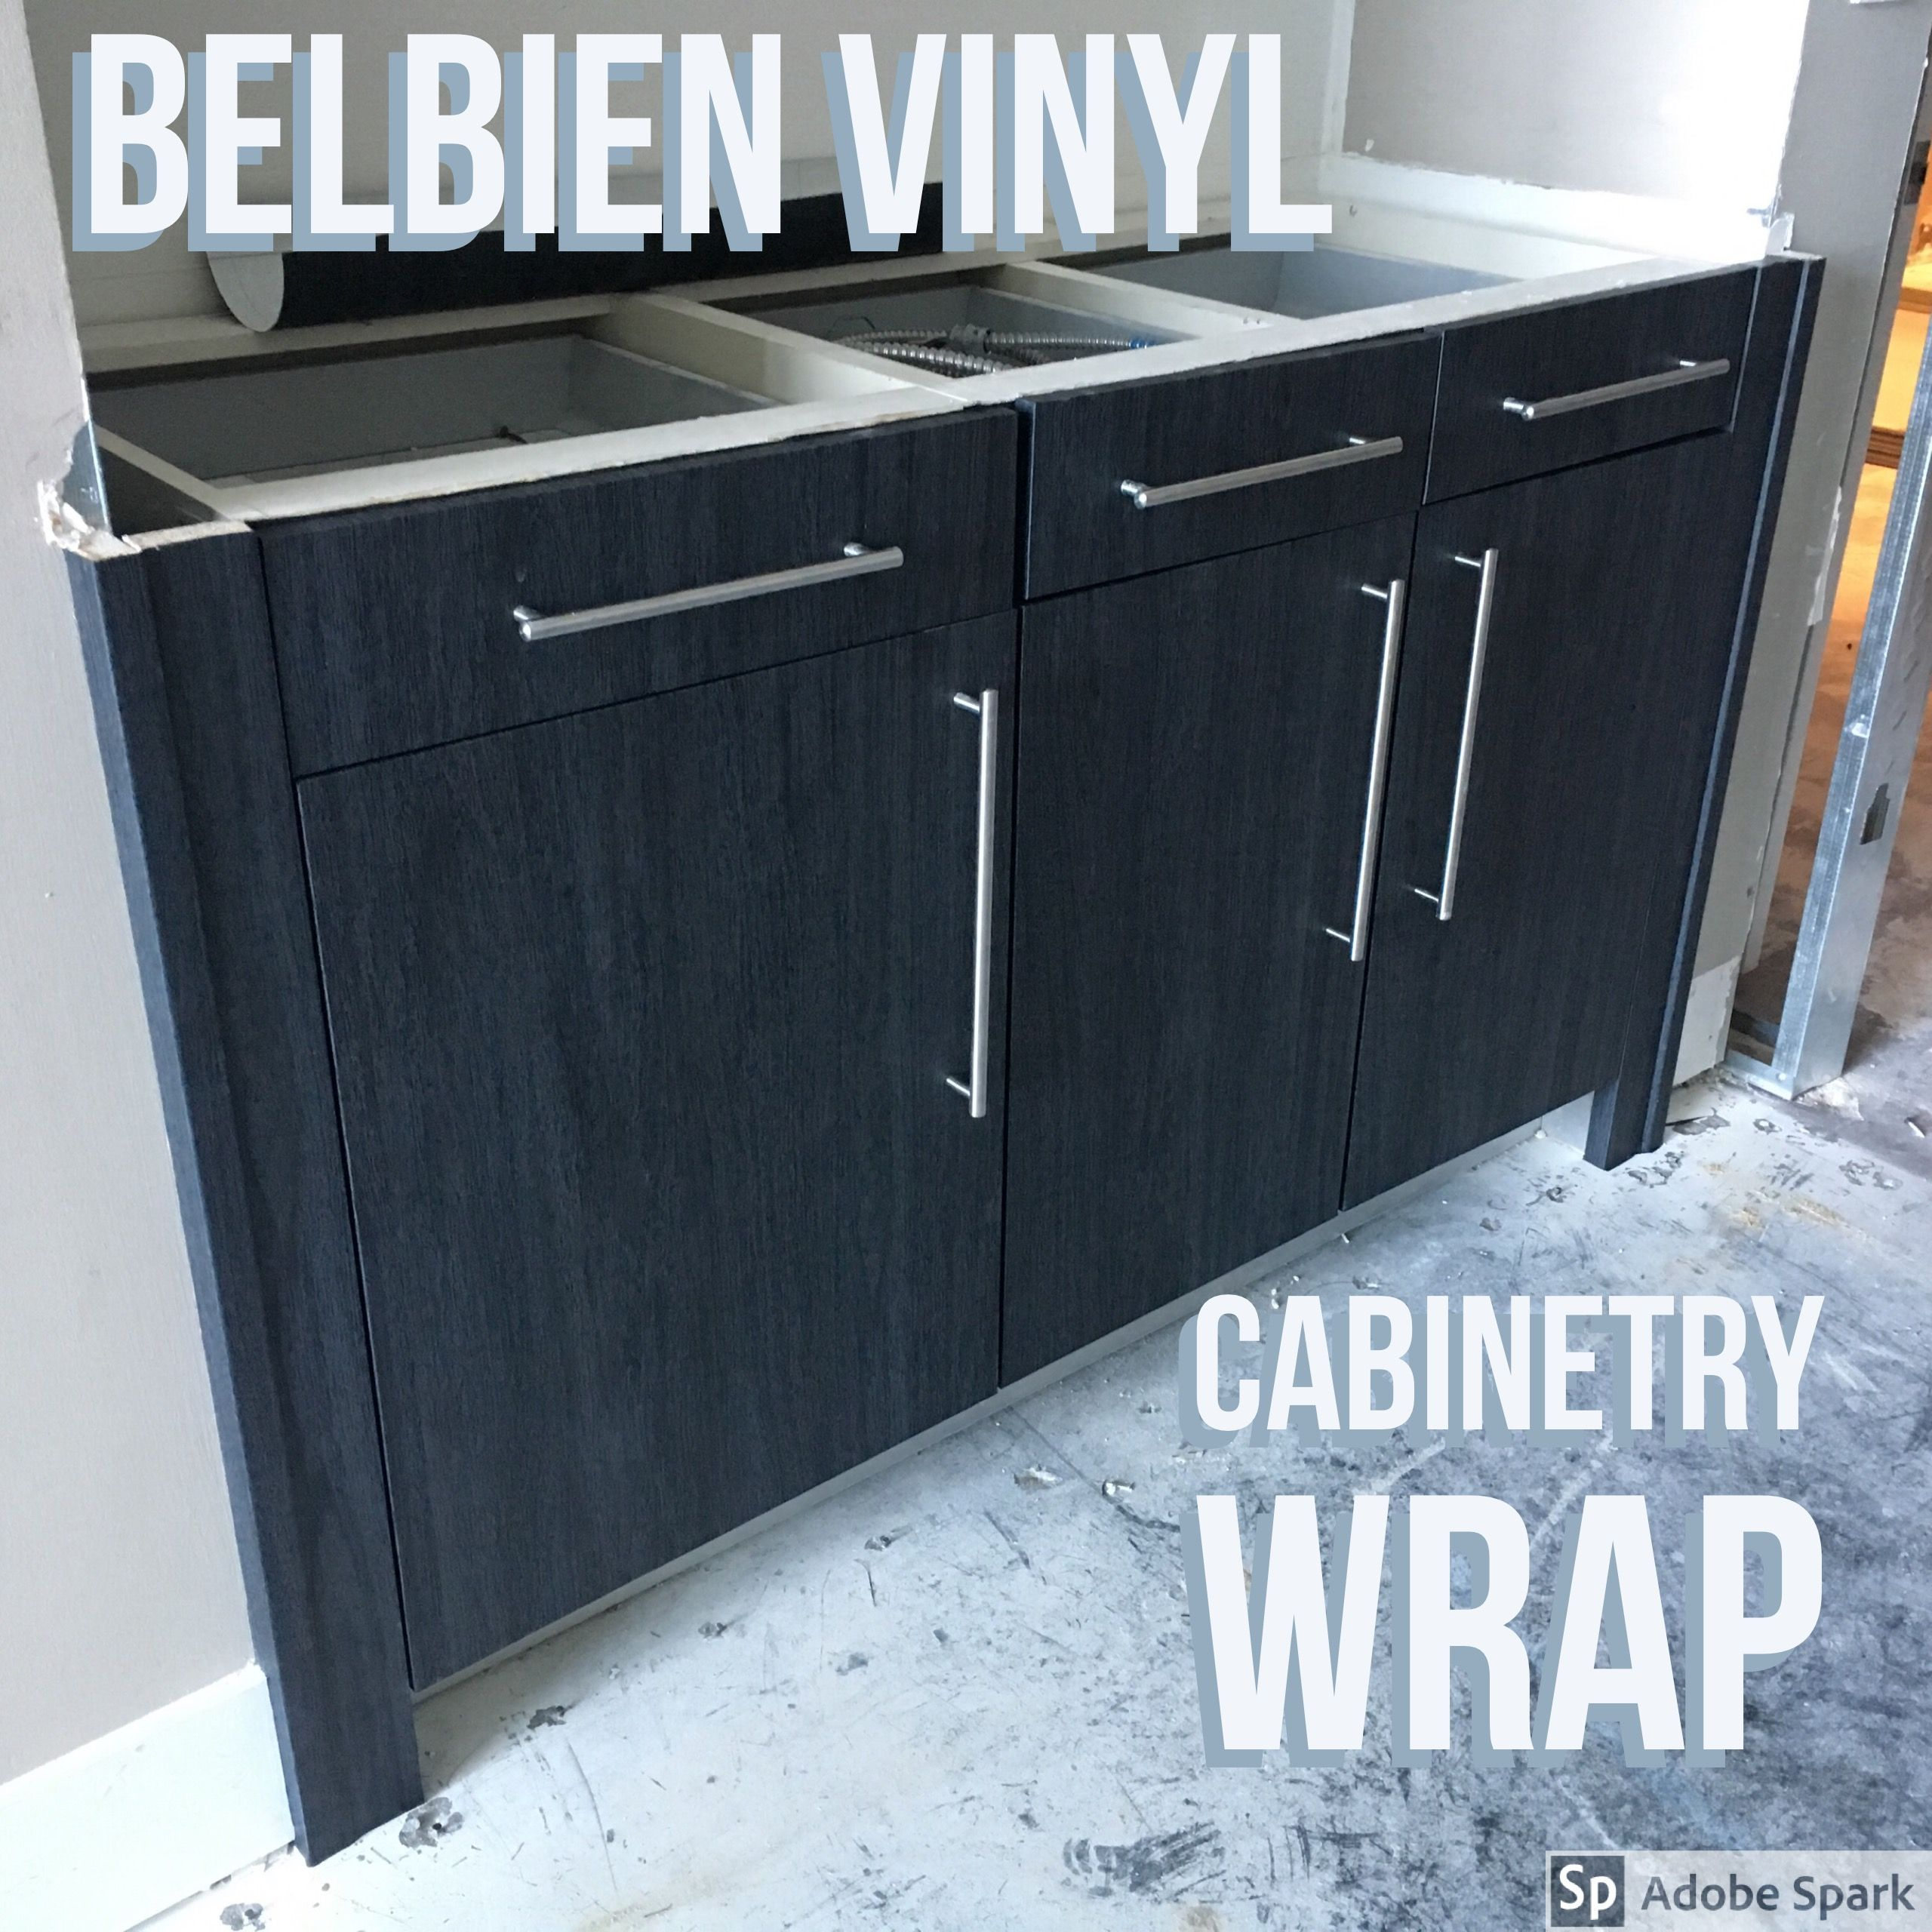 Bathroom Cabinetry Wrap We Used Belbien Vinyl Www Rmwrapsstore